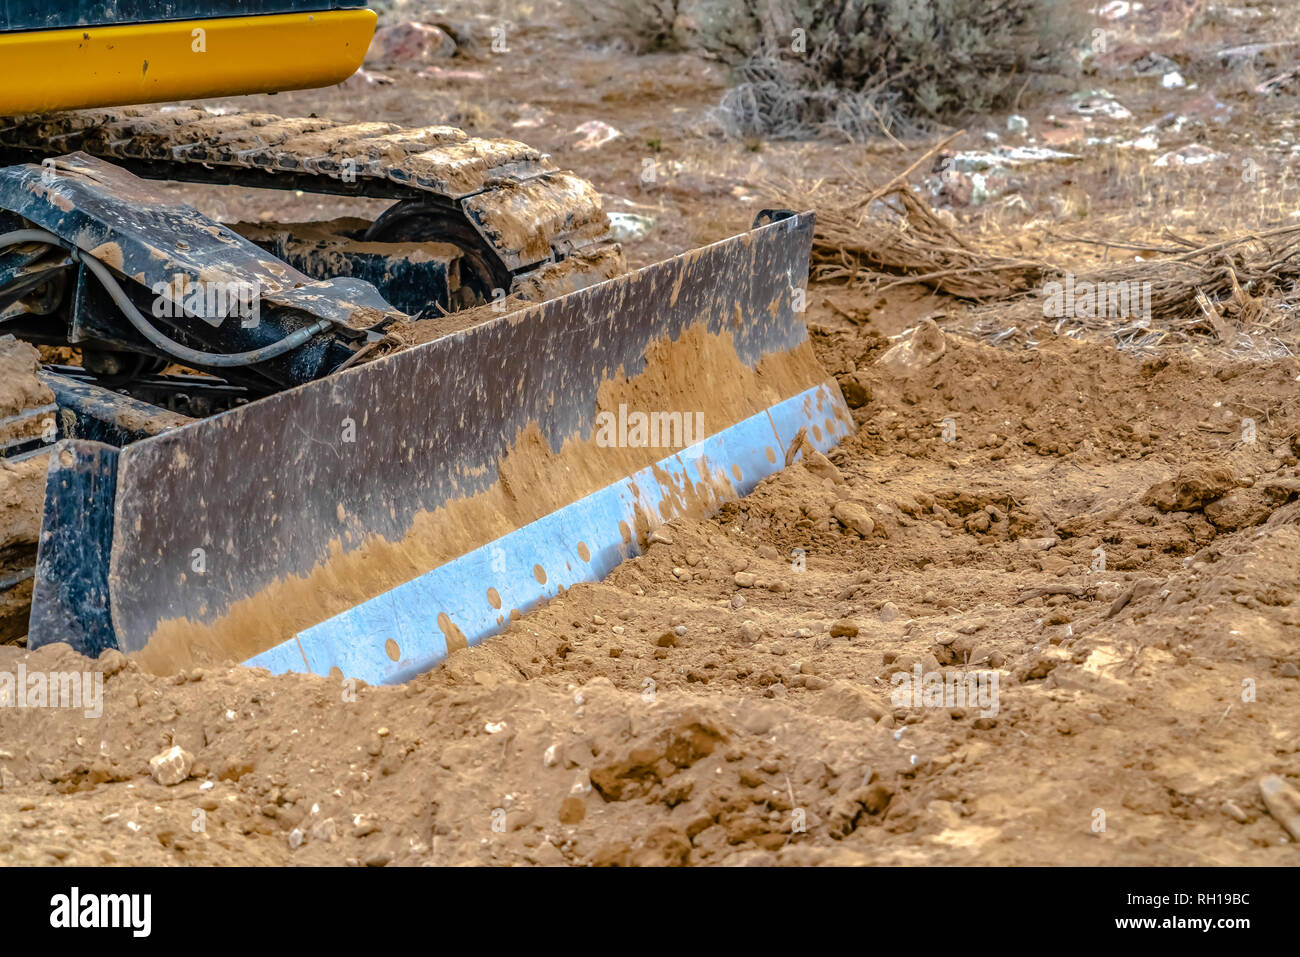 Grader blade attached to excavator in Utah Valley - Stock Image